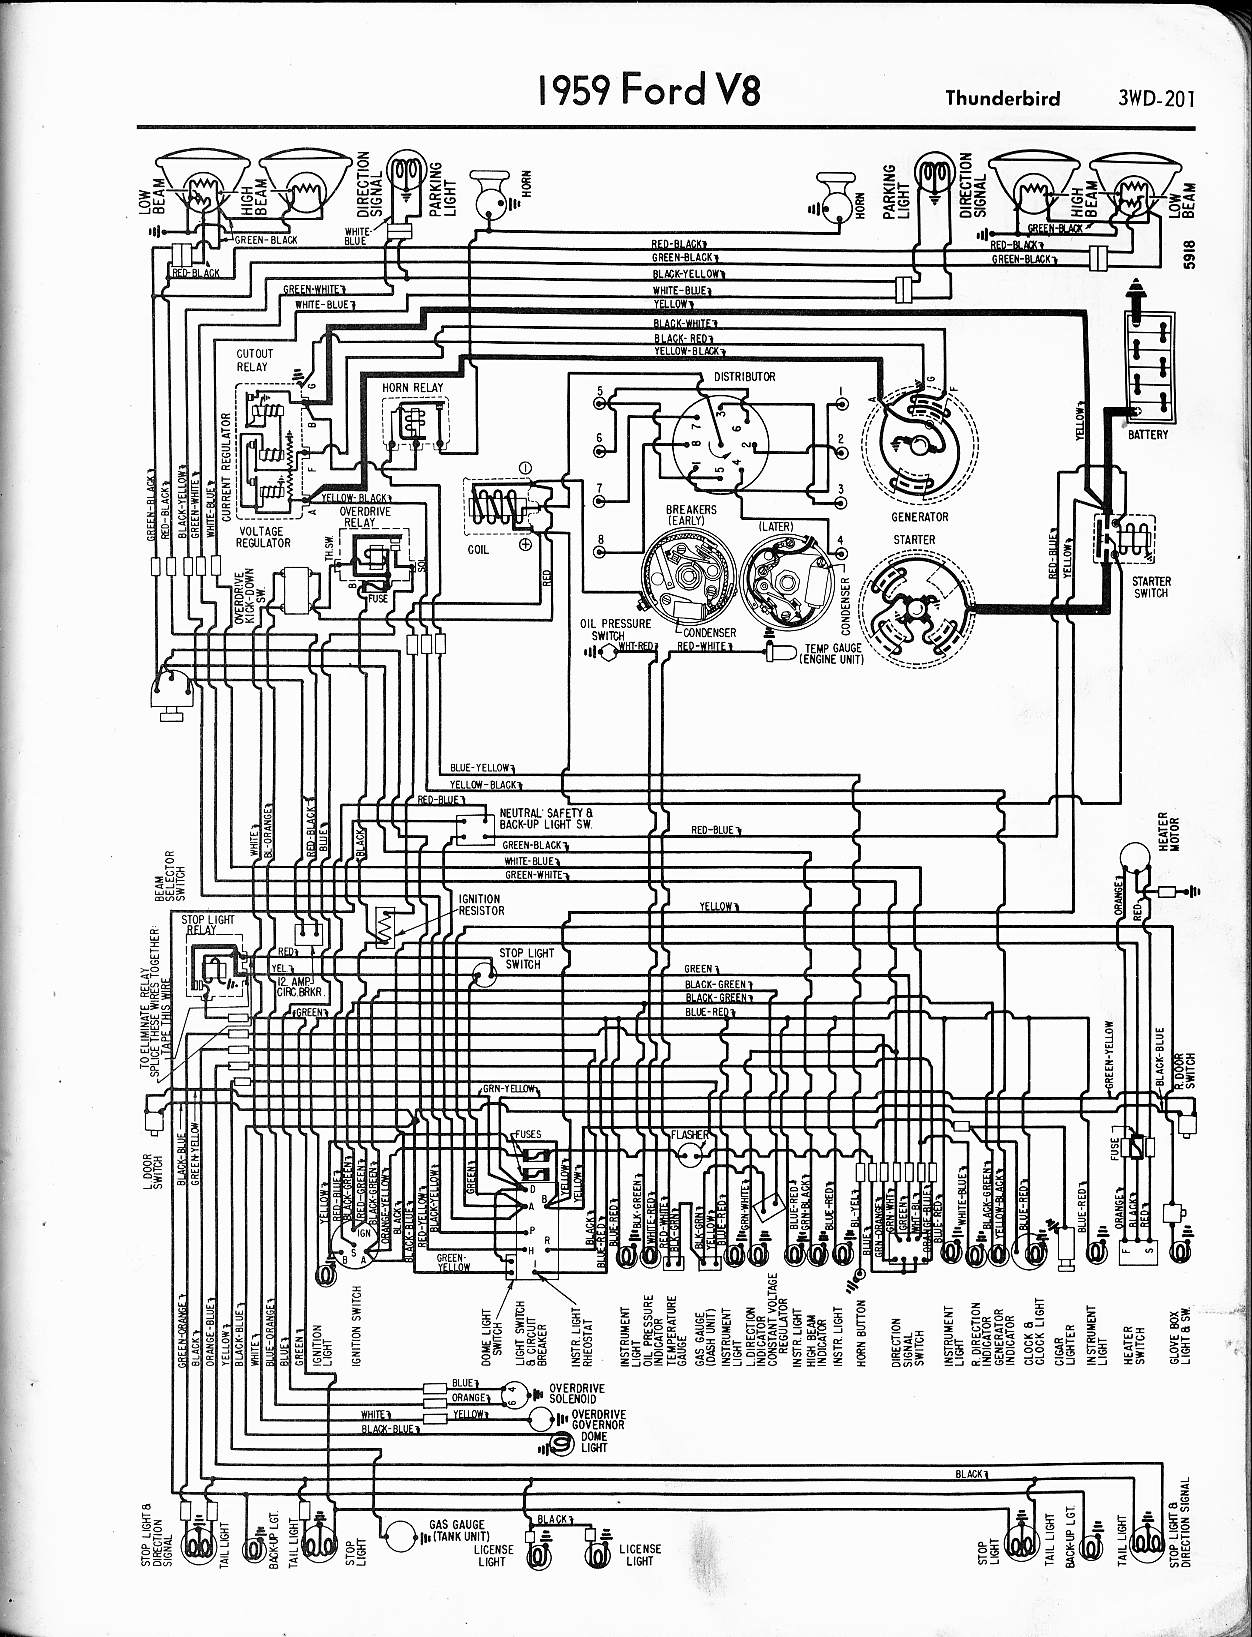 2004 Range Rover 4000 V 8 Fuse Box Diagram Wiring Libraries Ford Library1959 Thunderbird 57 65